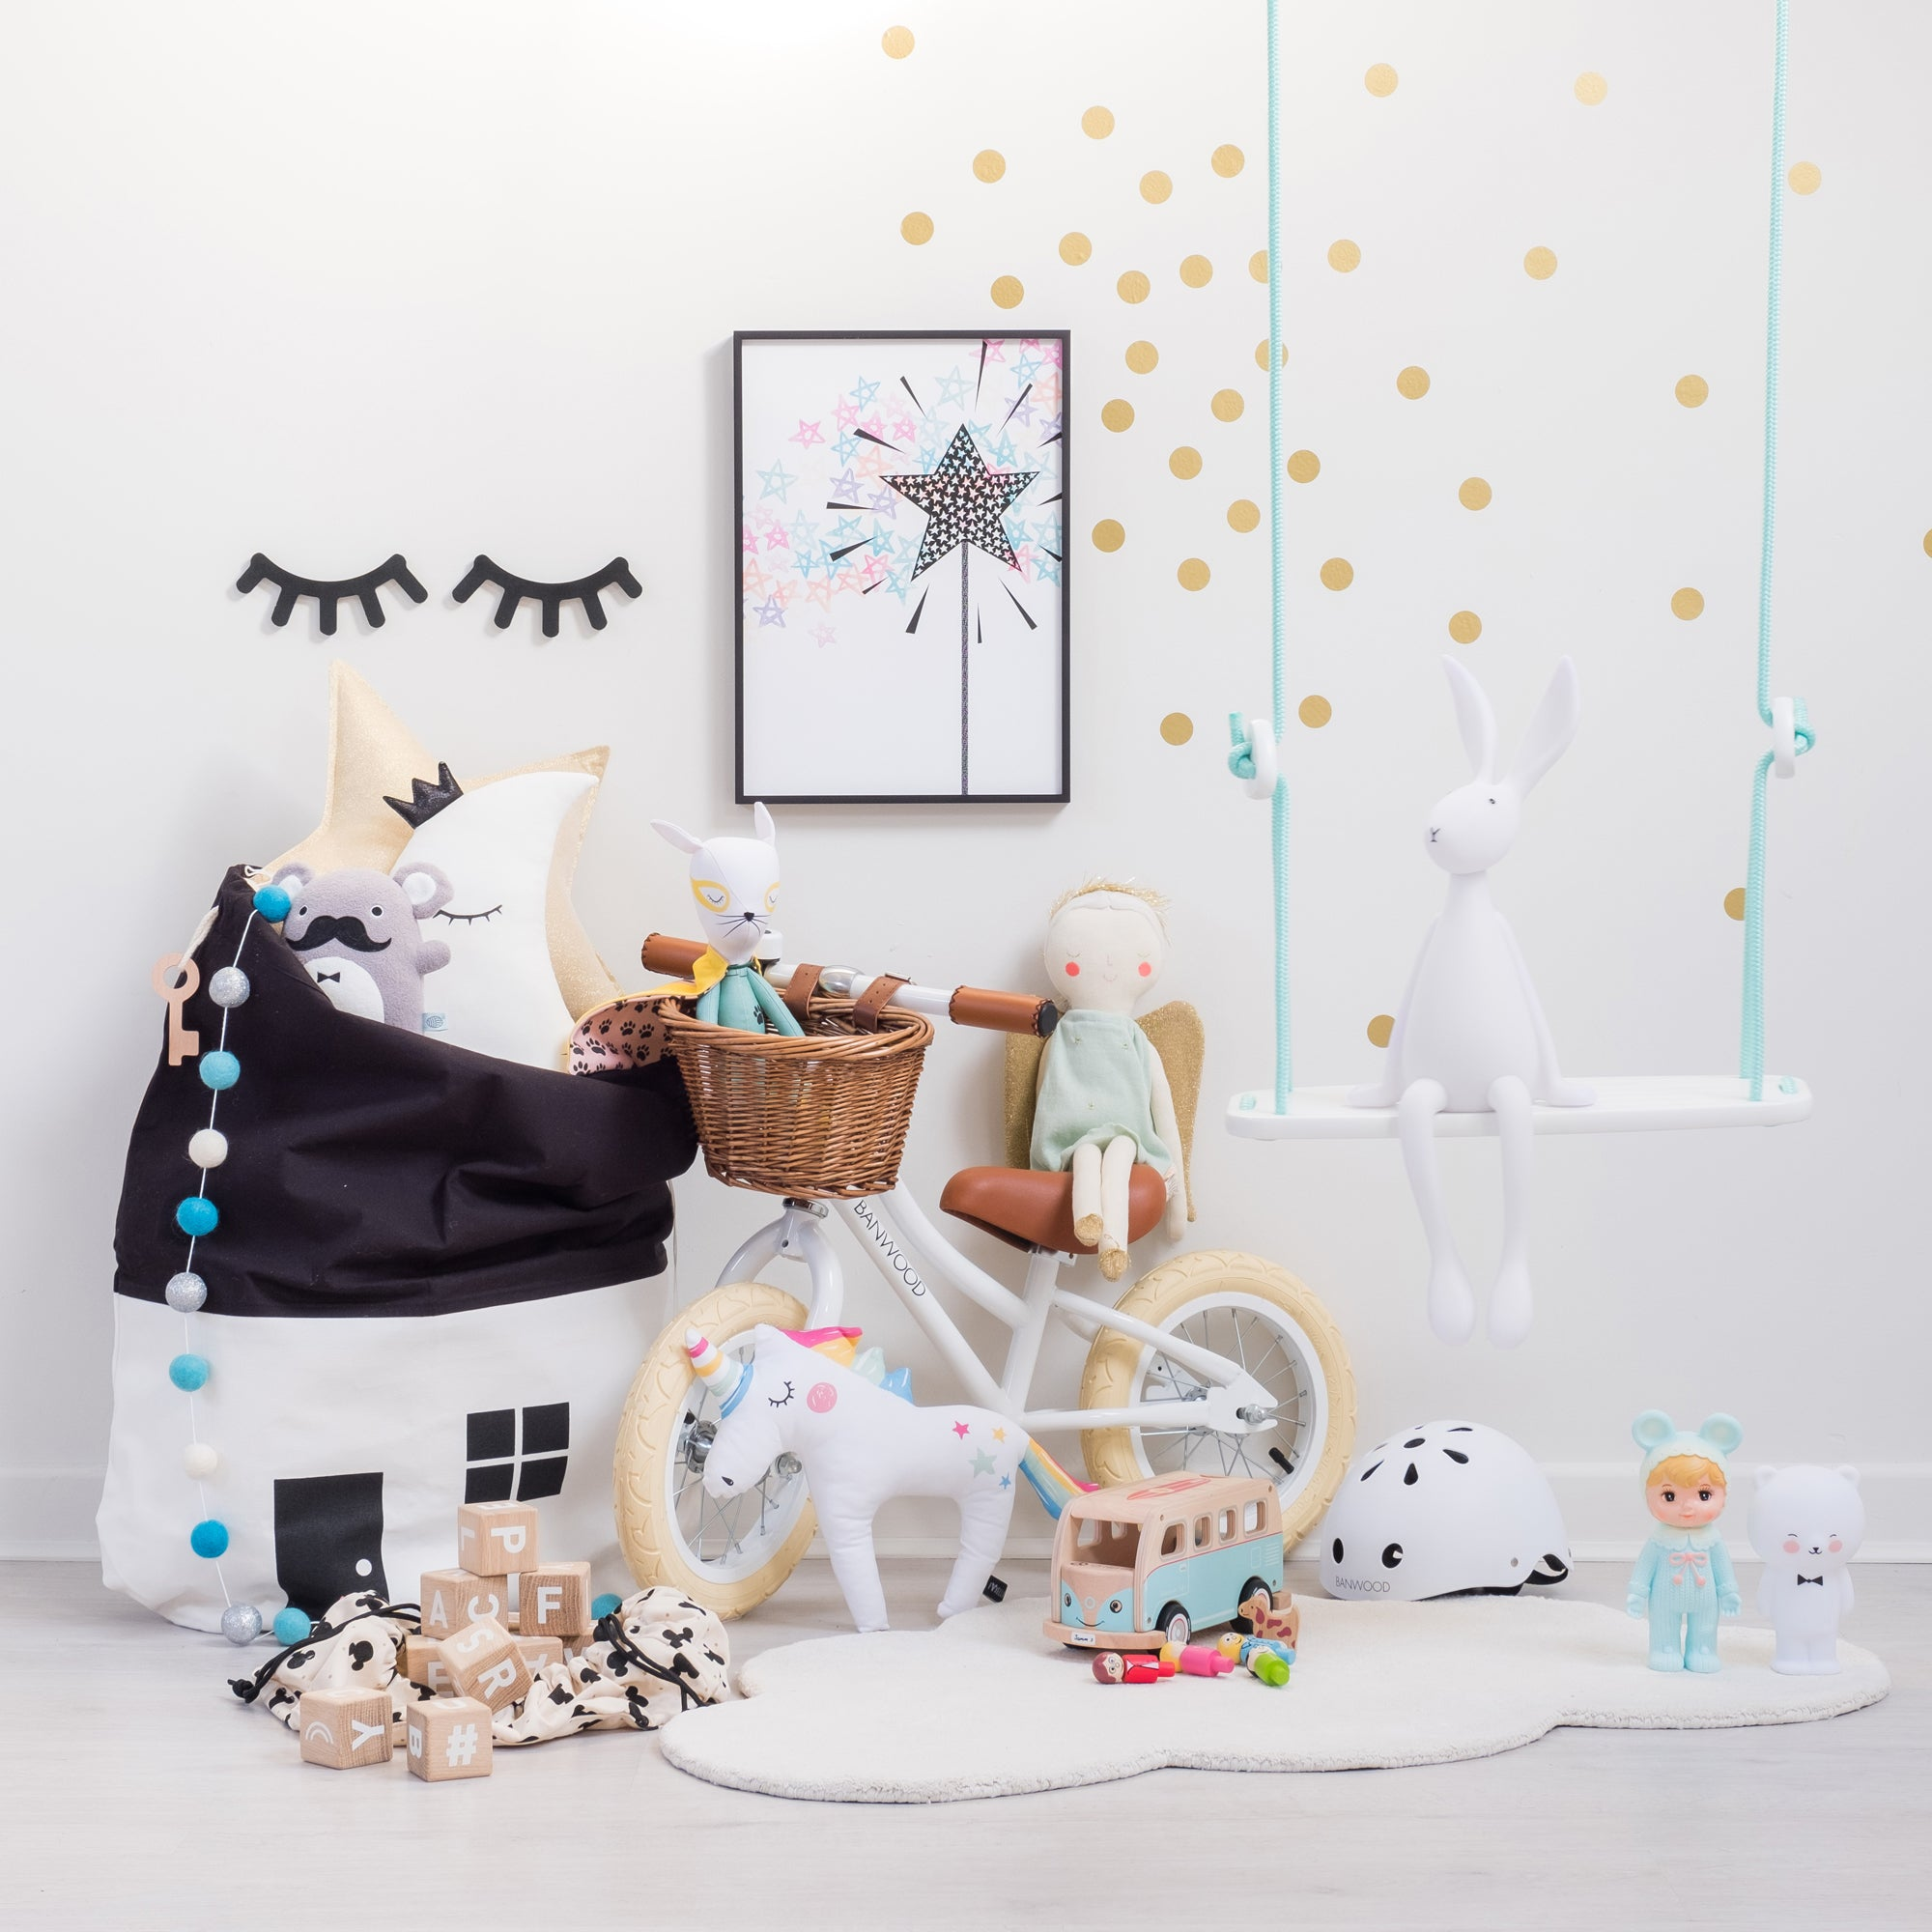 Toys and children's home accessories, available at Bobby Rabbit.